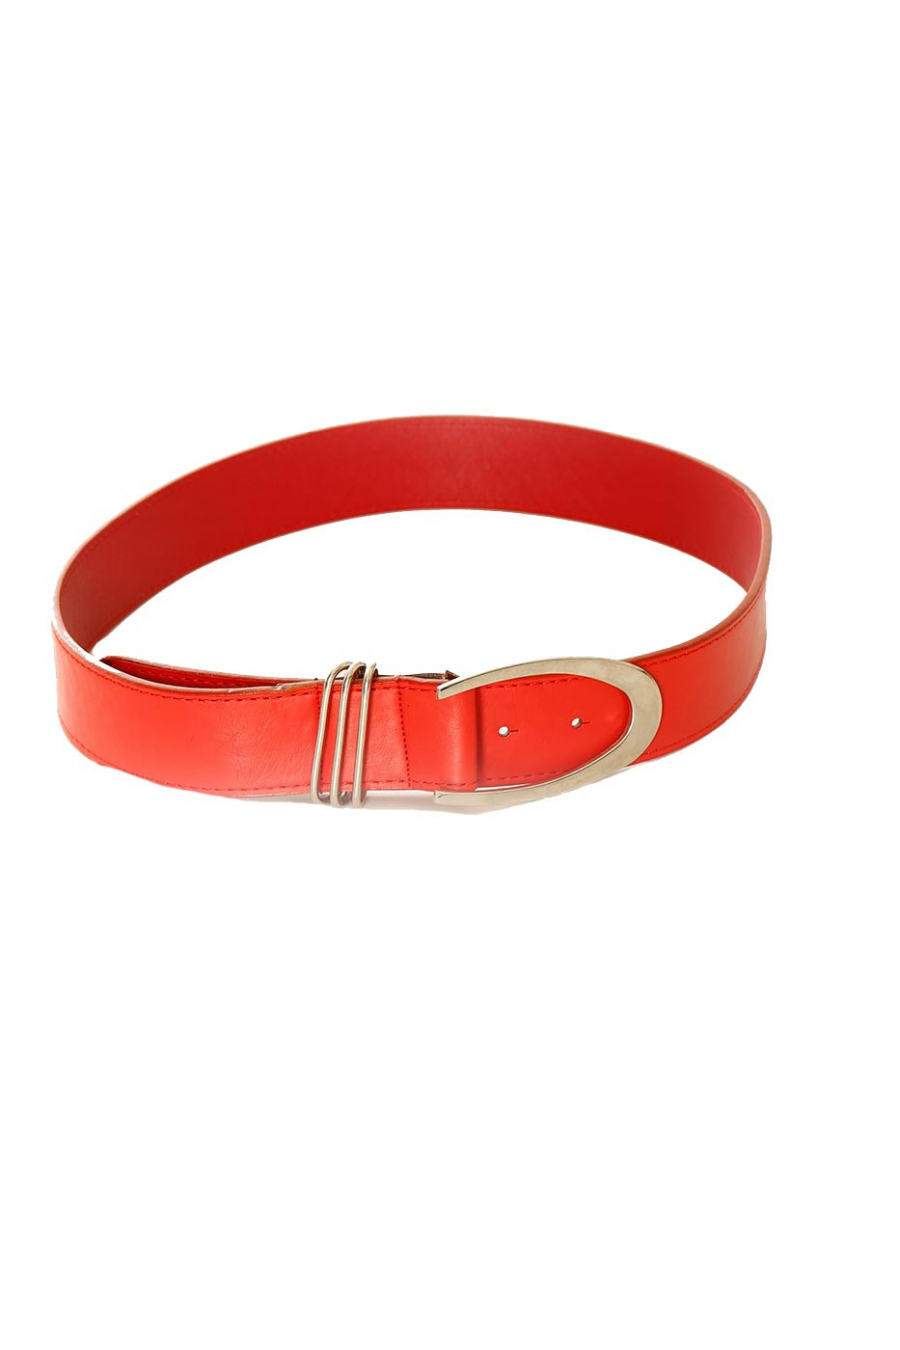 Basic Red belt with silver buckle. BG-P0Z9